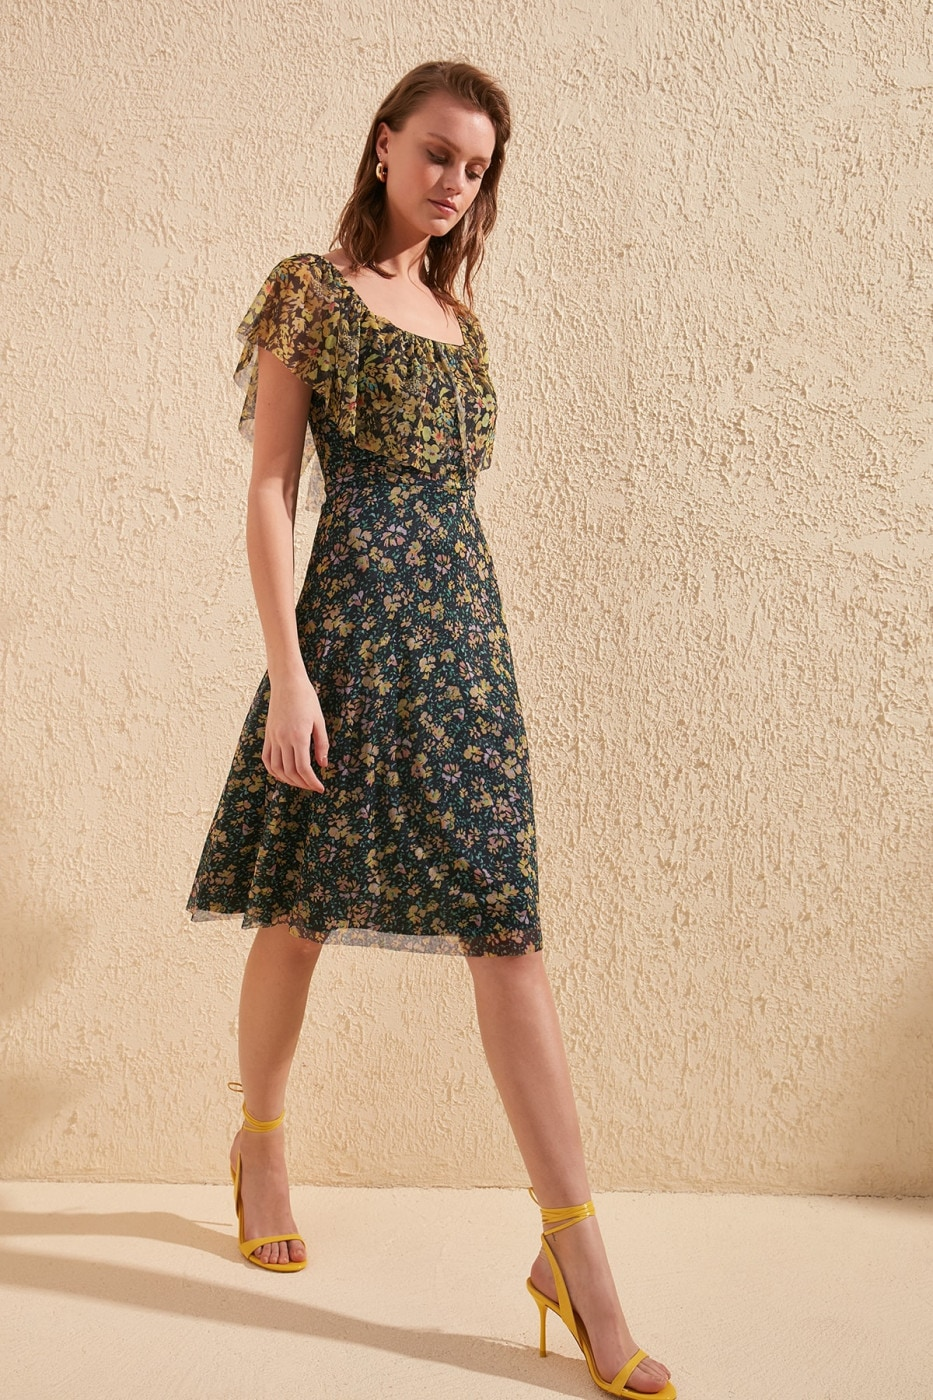 Trendyol MultiColored Floral Patterned Tulle Knitting Dress